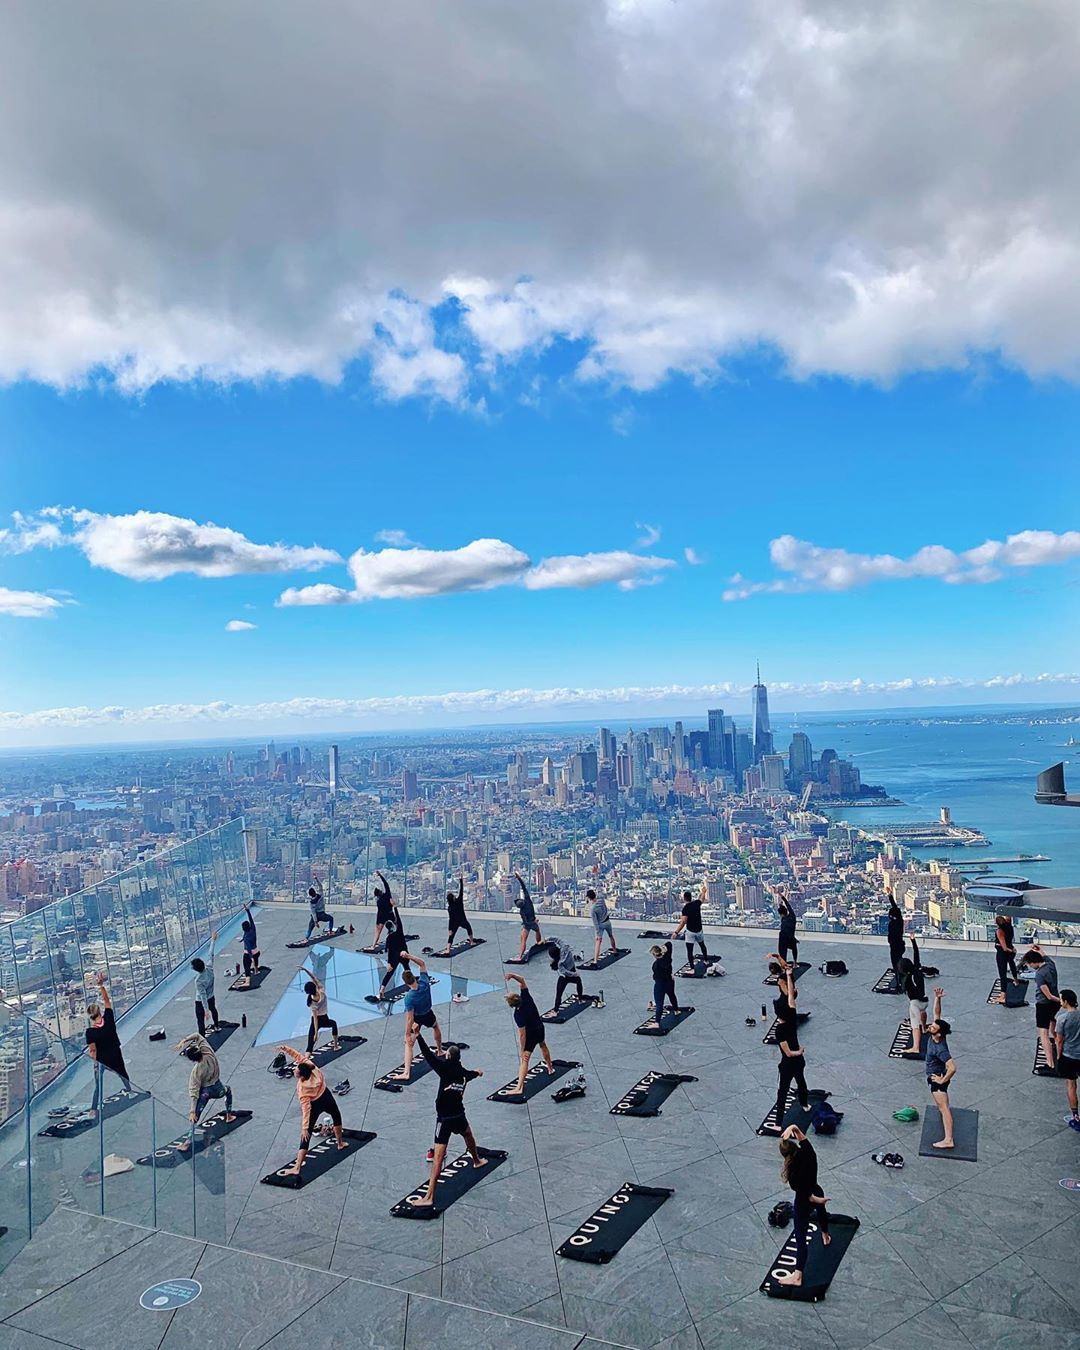 <yoga group fitness class on edge observation deck with view overlooking city to downtown manhattan